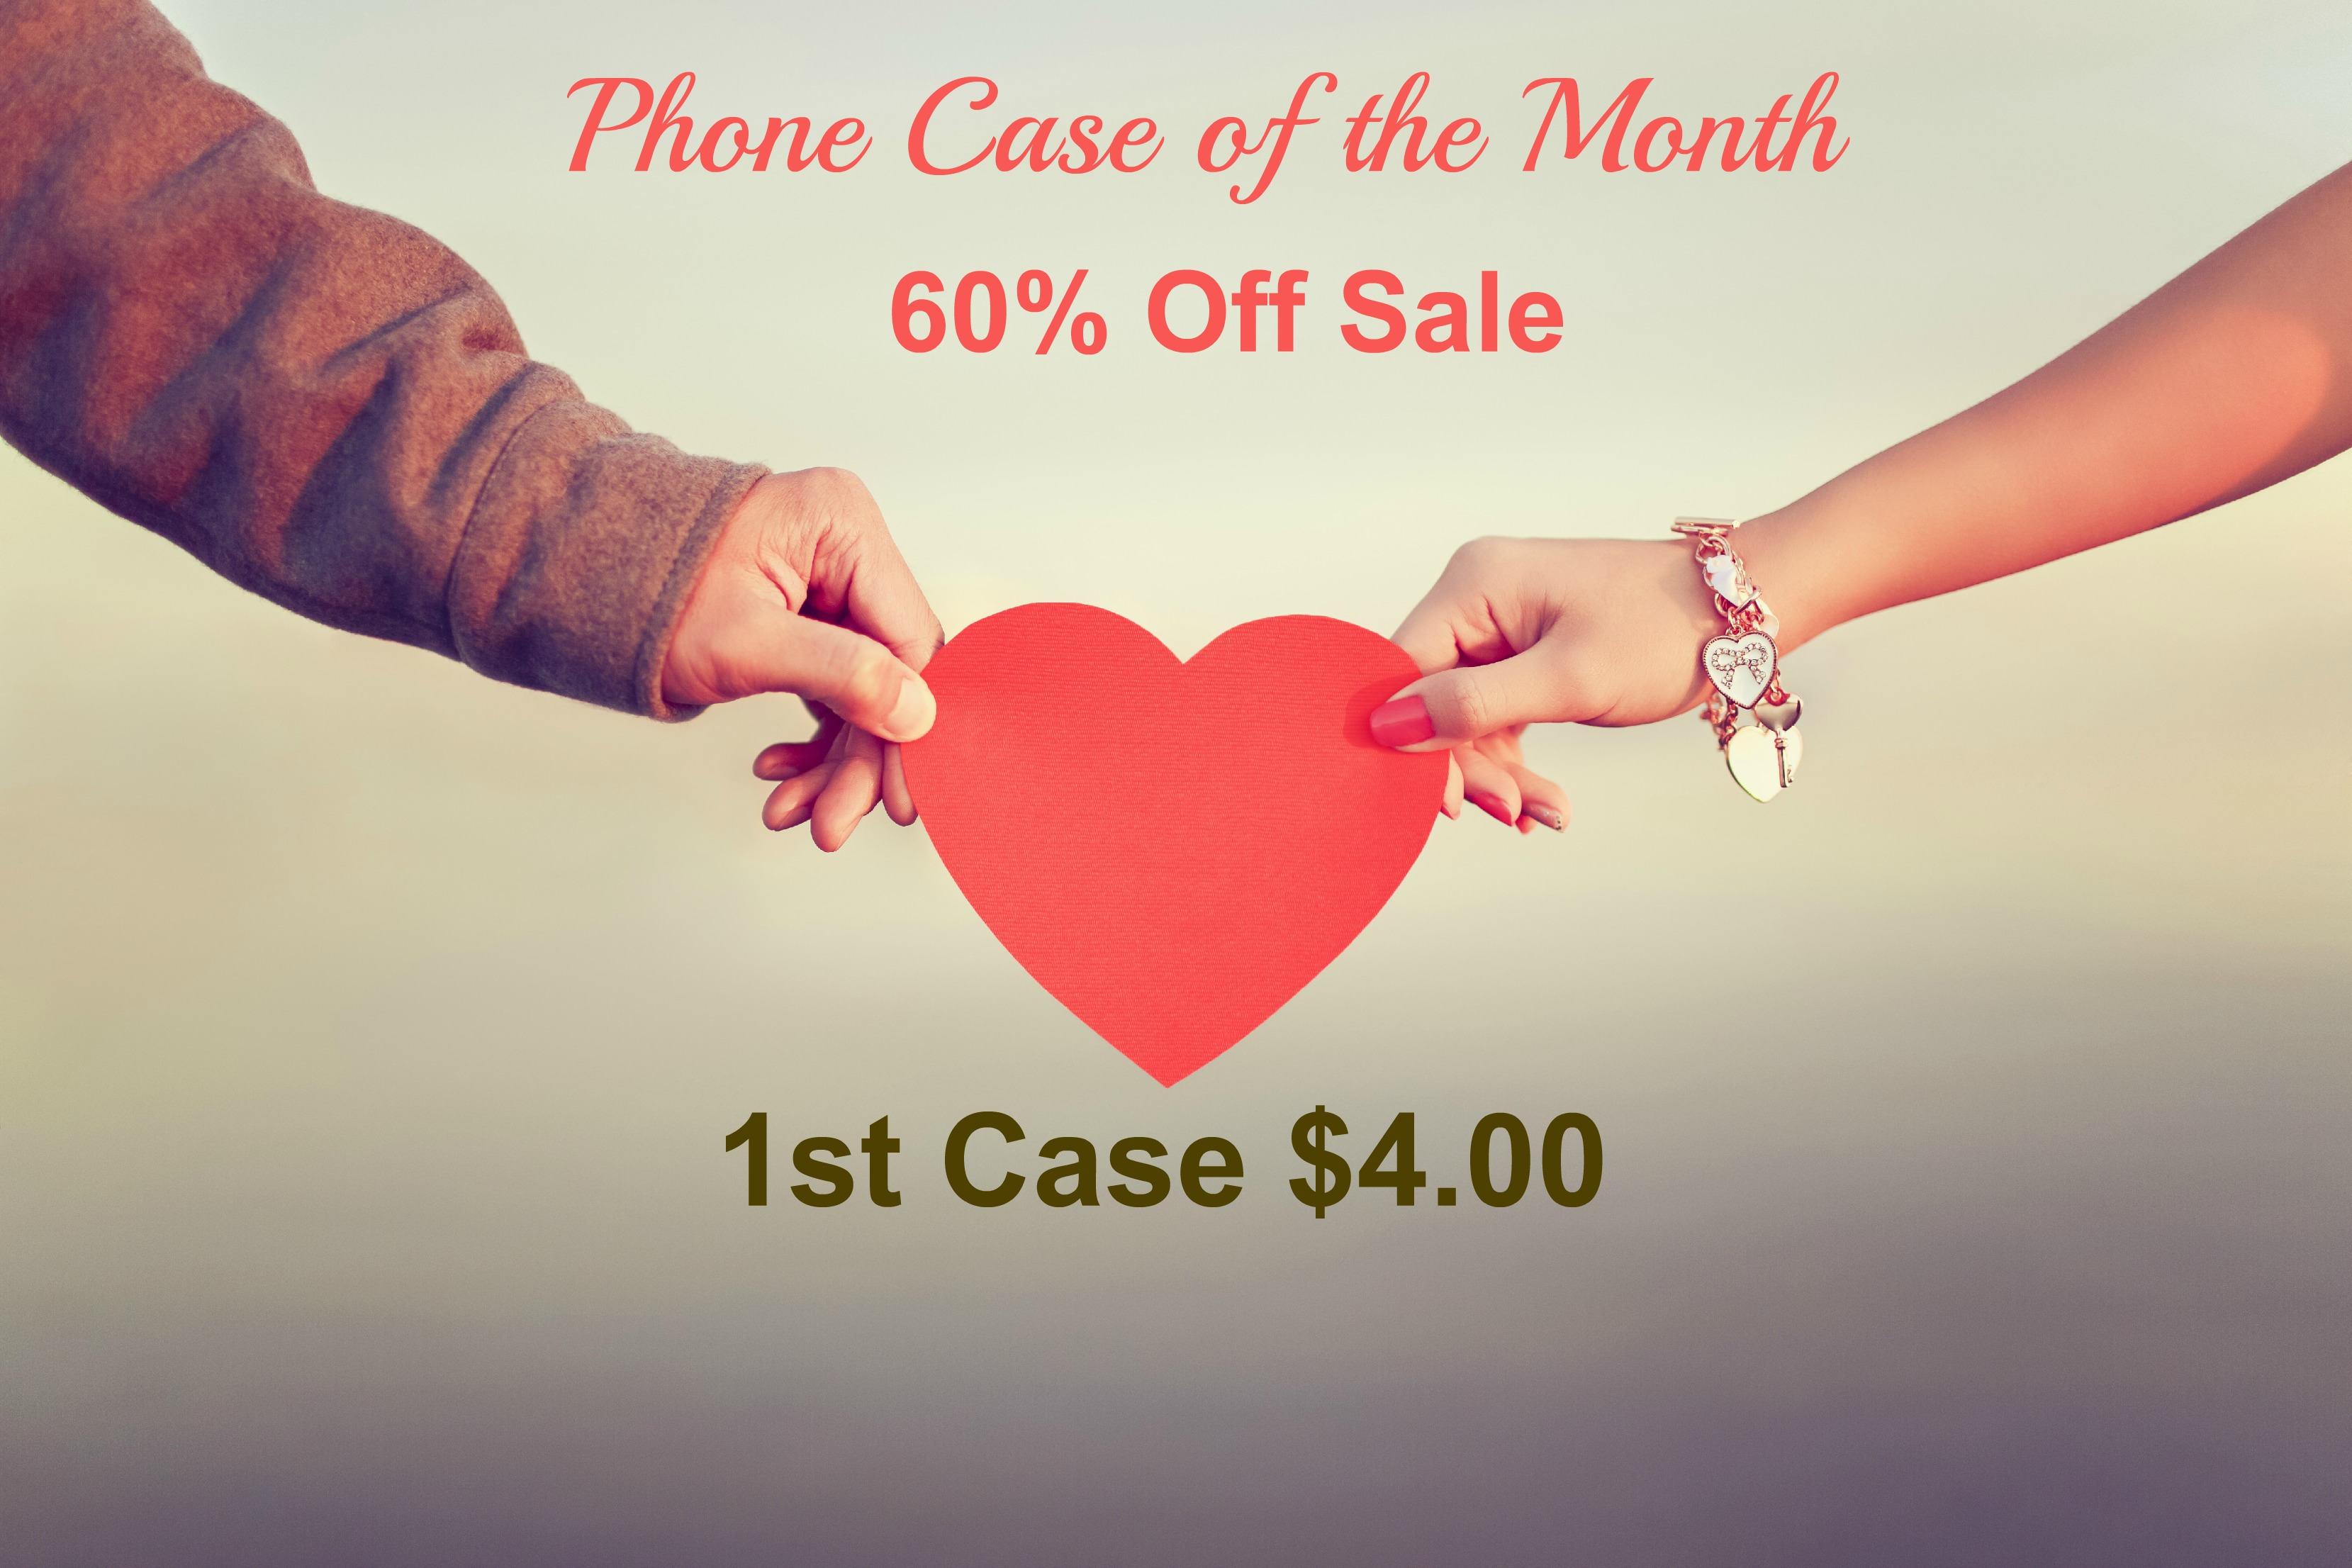 Phone Case of the Month President's Day Coupon - 1st Case $4.00